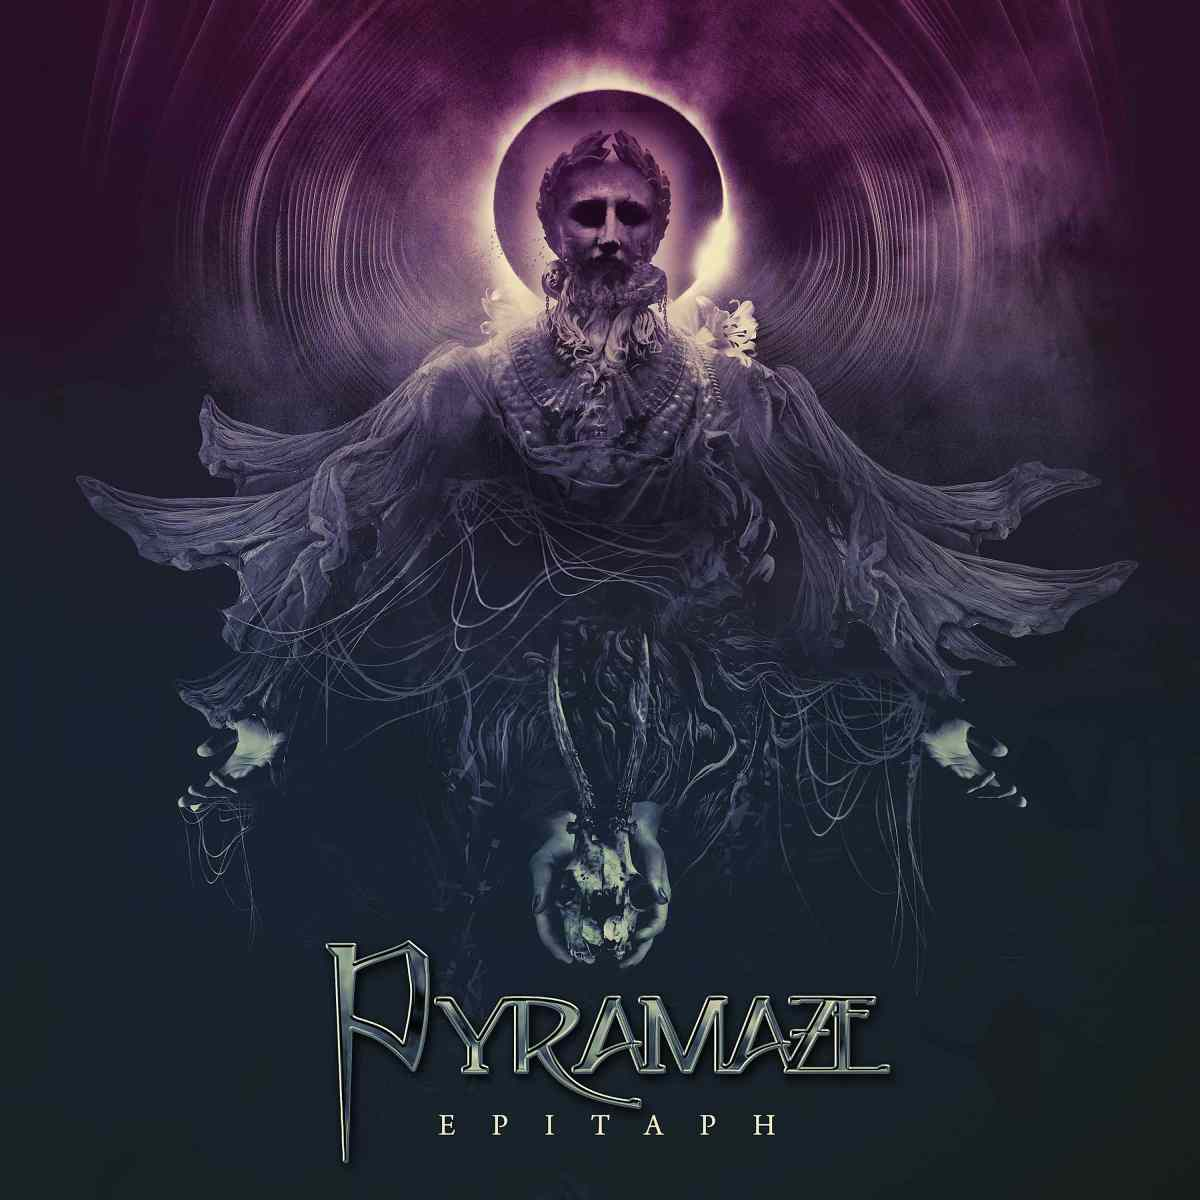 REVIEW: Pyramaze – Epitaph